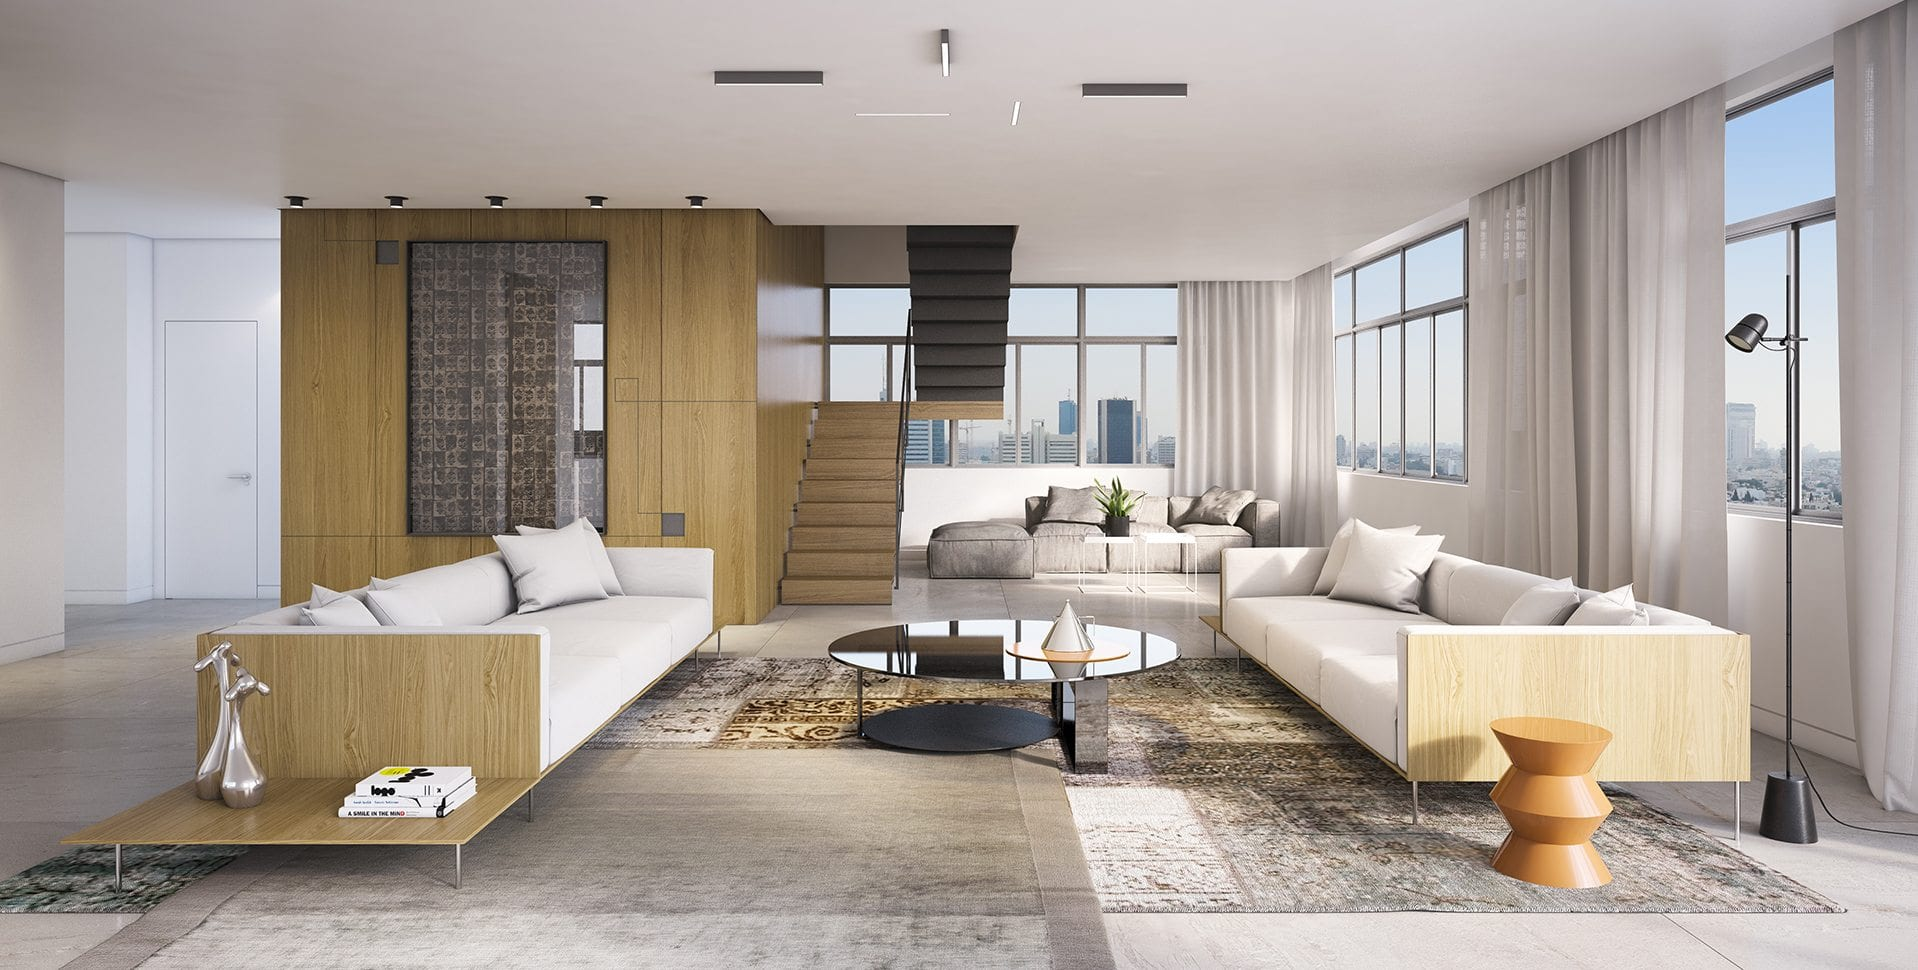 Maayan-Golan_Architectural-Visualization_ penthouse-living-room_interior-visualization_ Dizengoff-189-tel-aviv_03